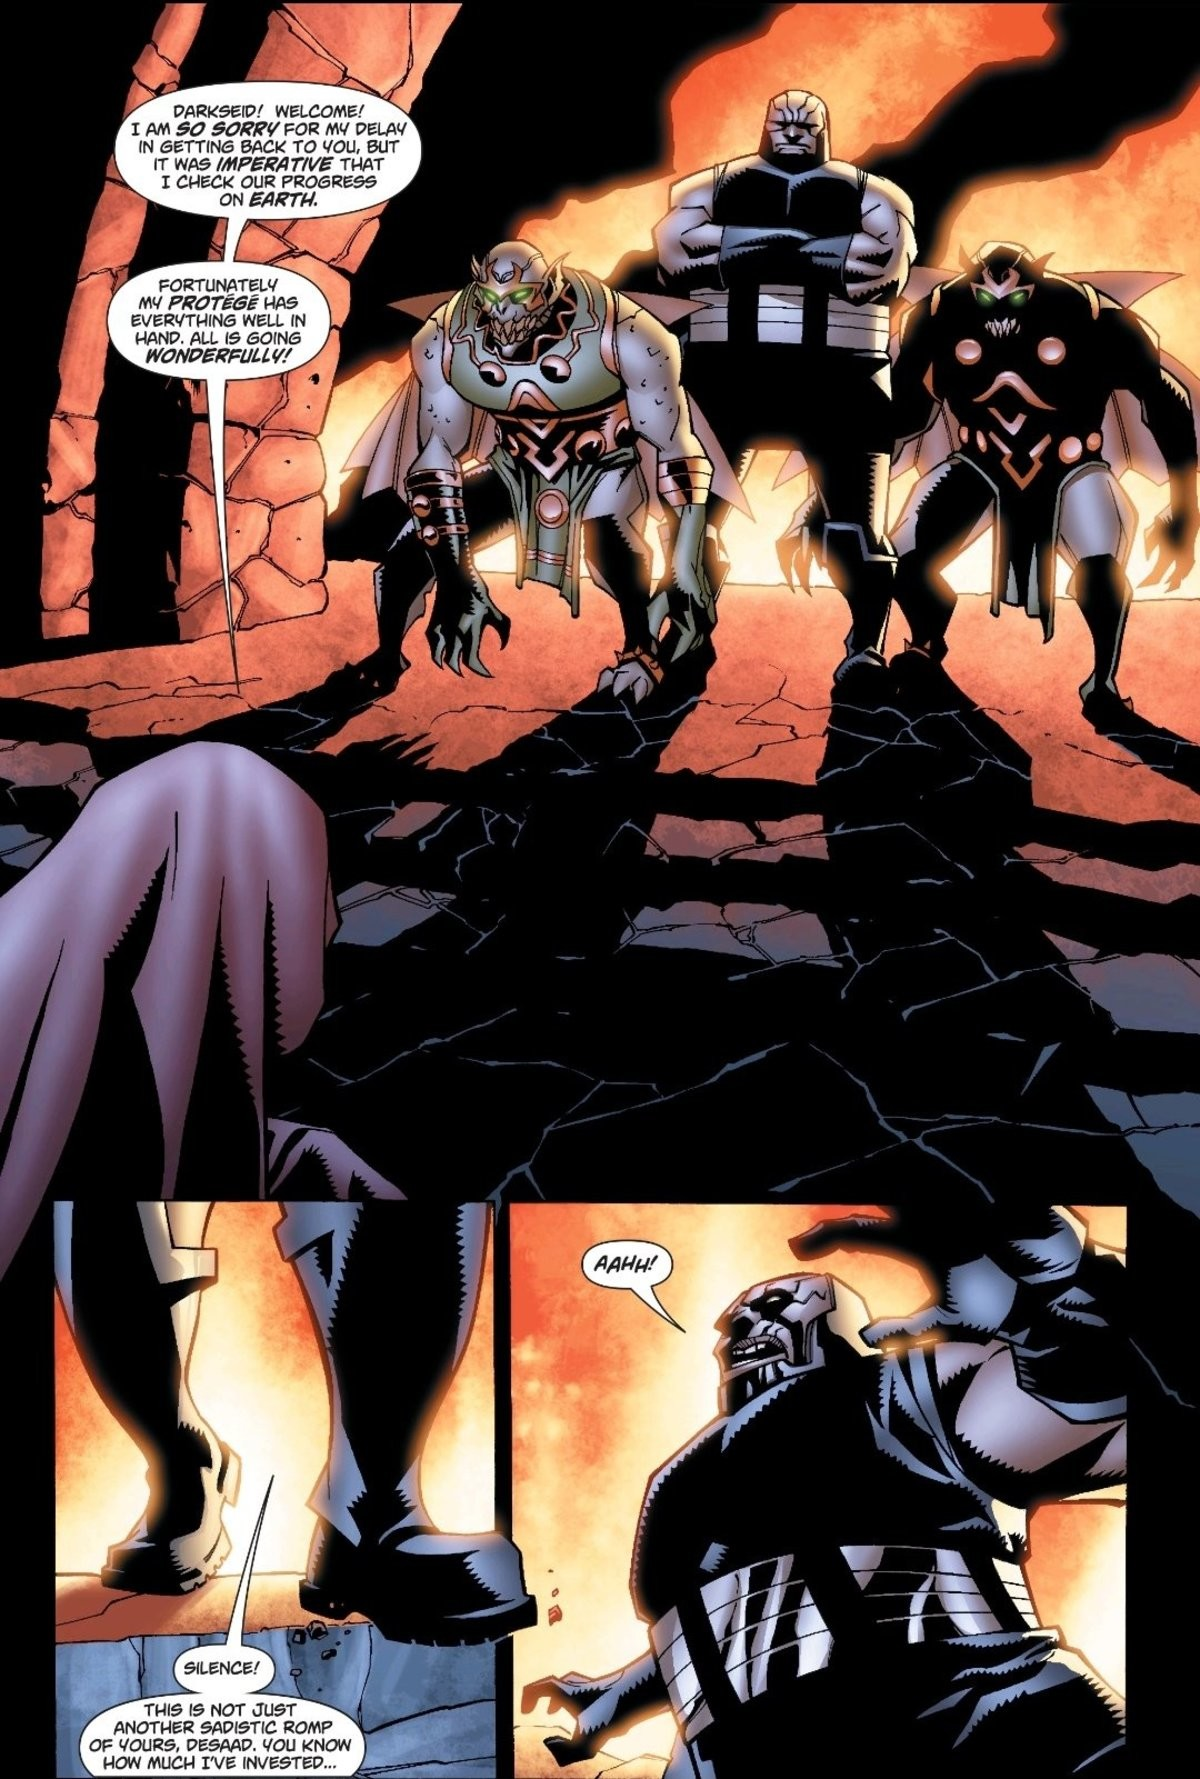 Darkseid Tripped. .. ok can a get some context? cuz you don't just drop some like DARKSEID of all people dropping like a sack of potatoes and not even give an issue for where this h